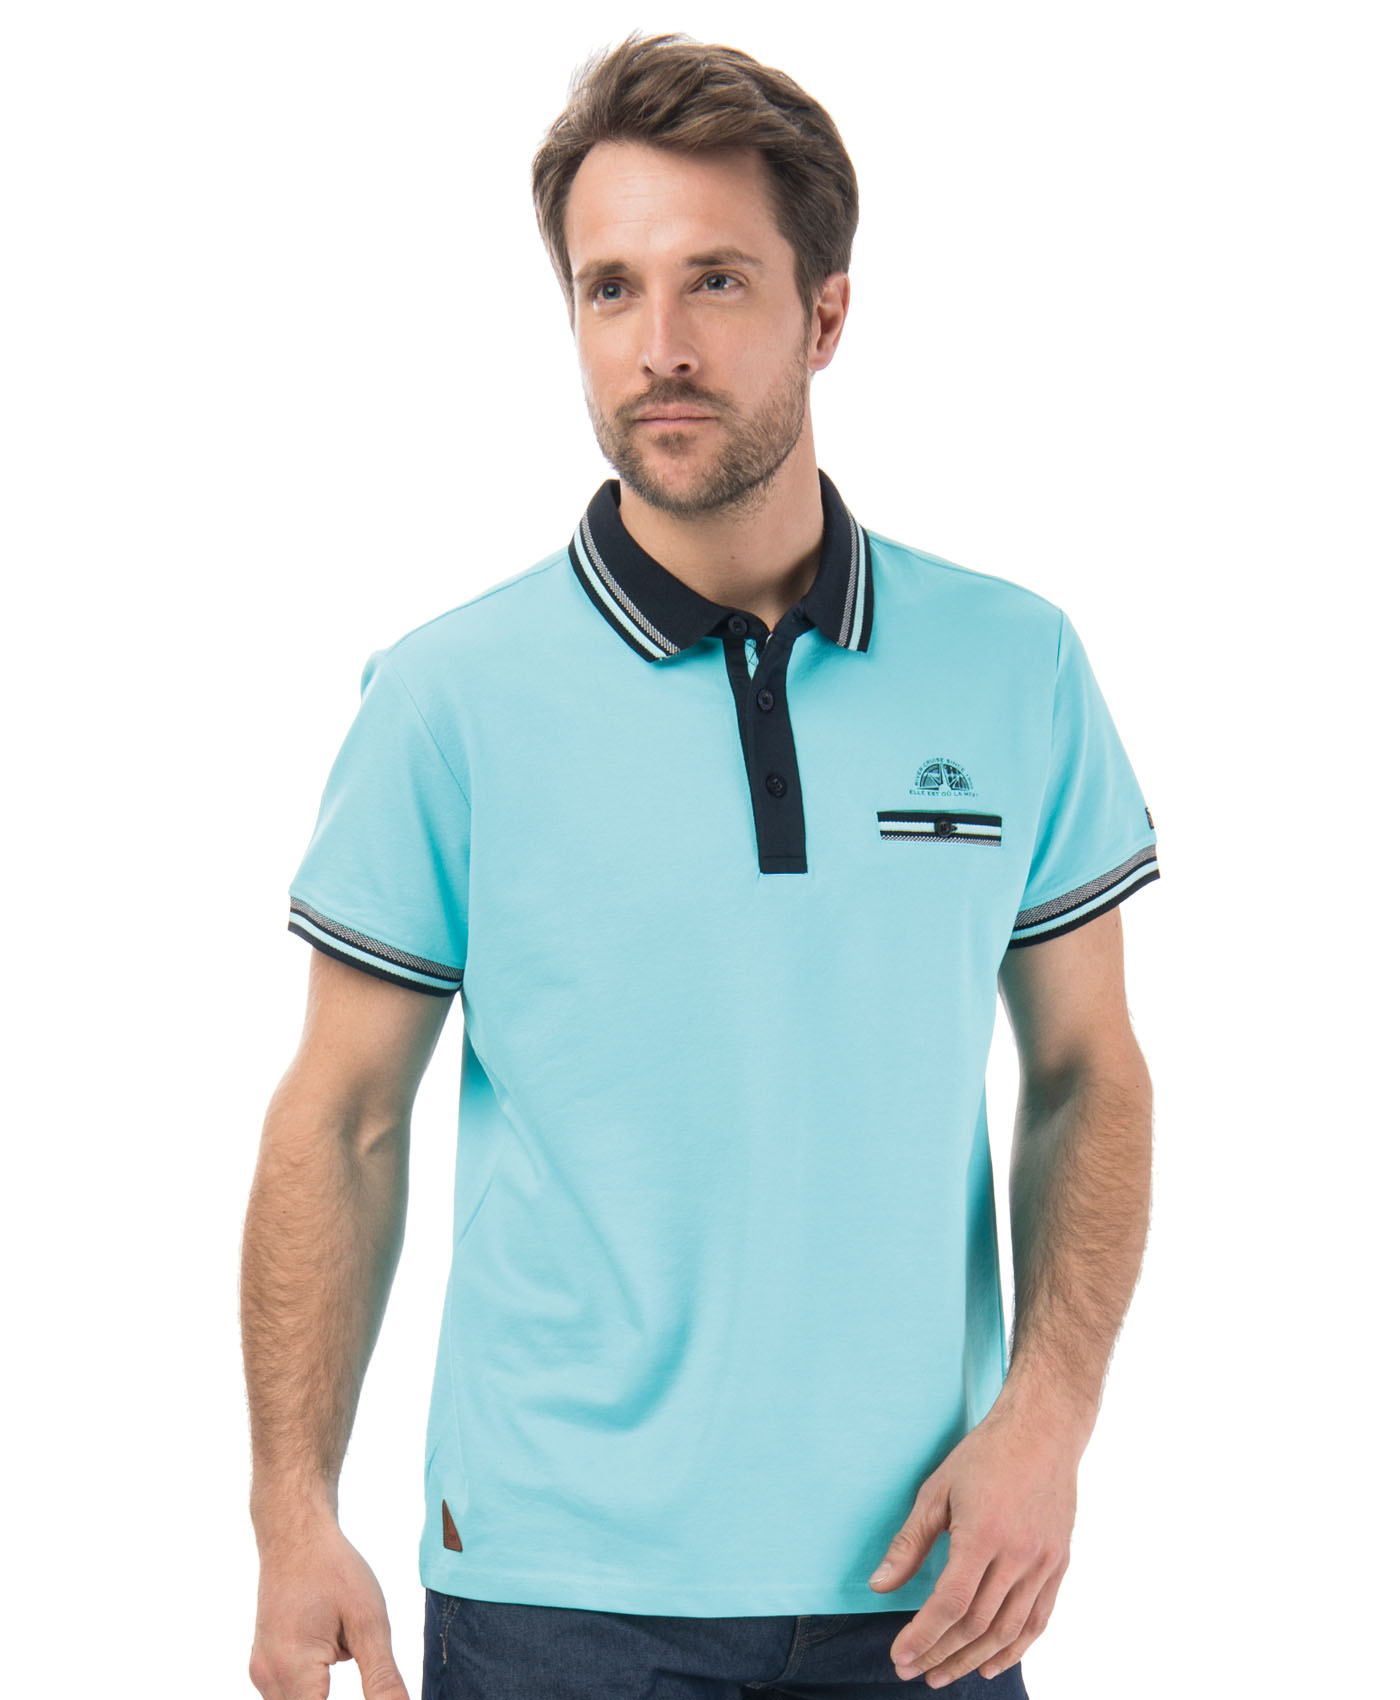 Polo homme - Mode marine Promotions